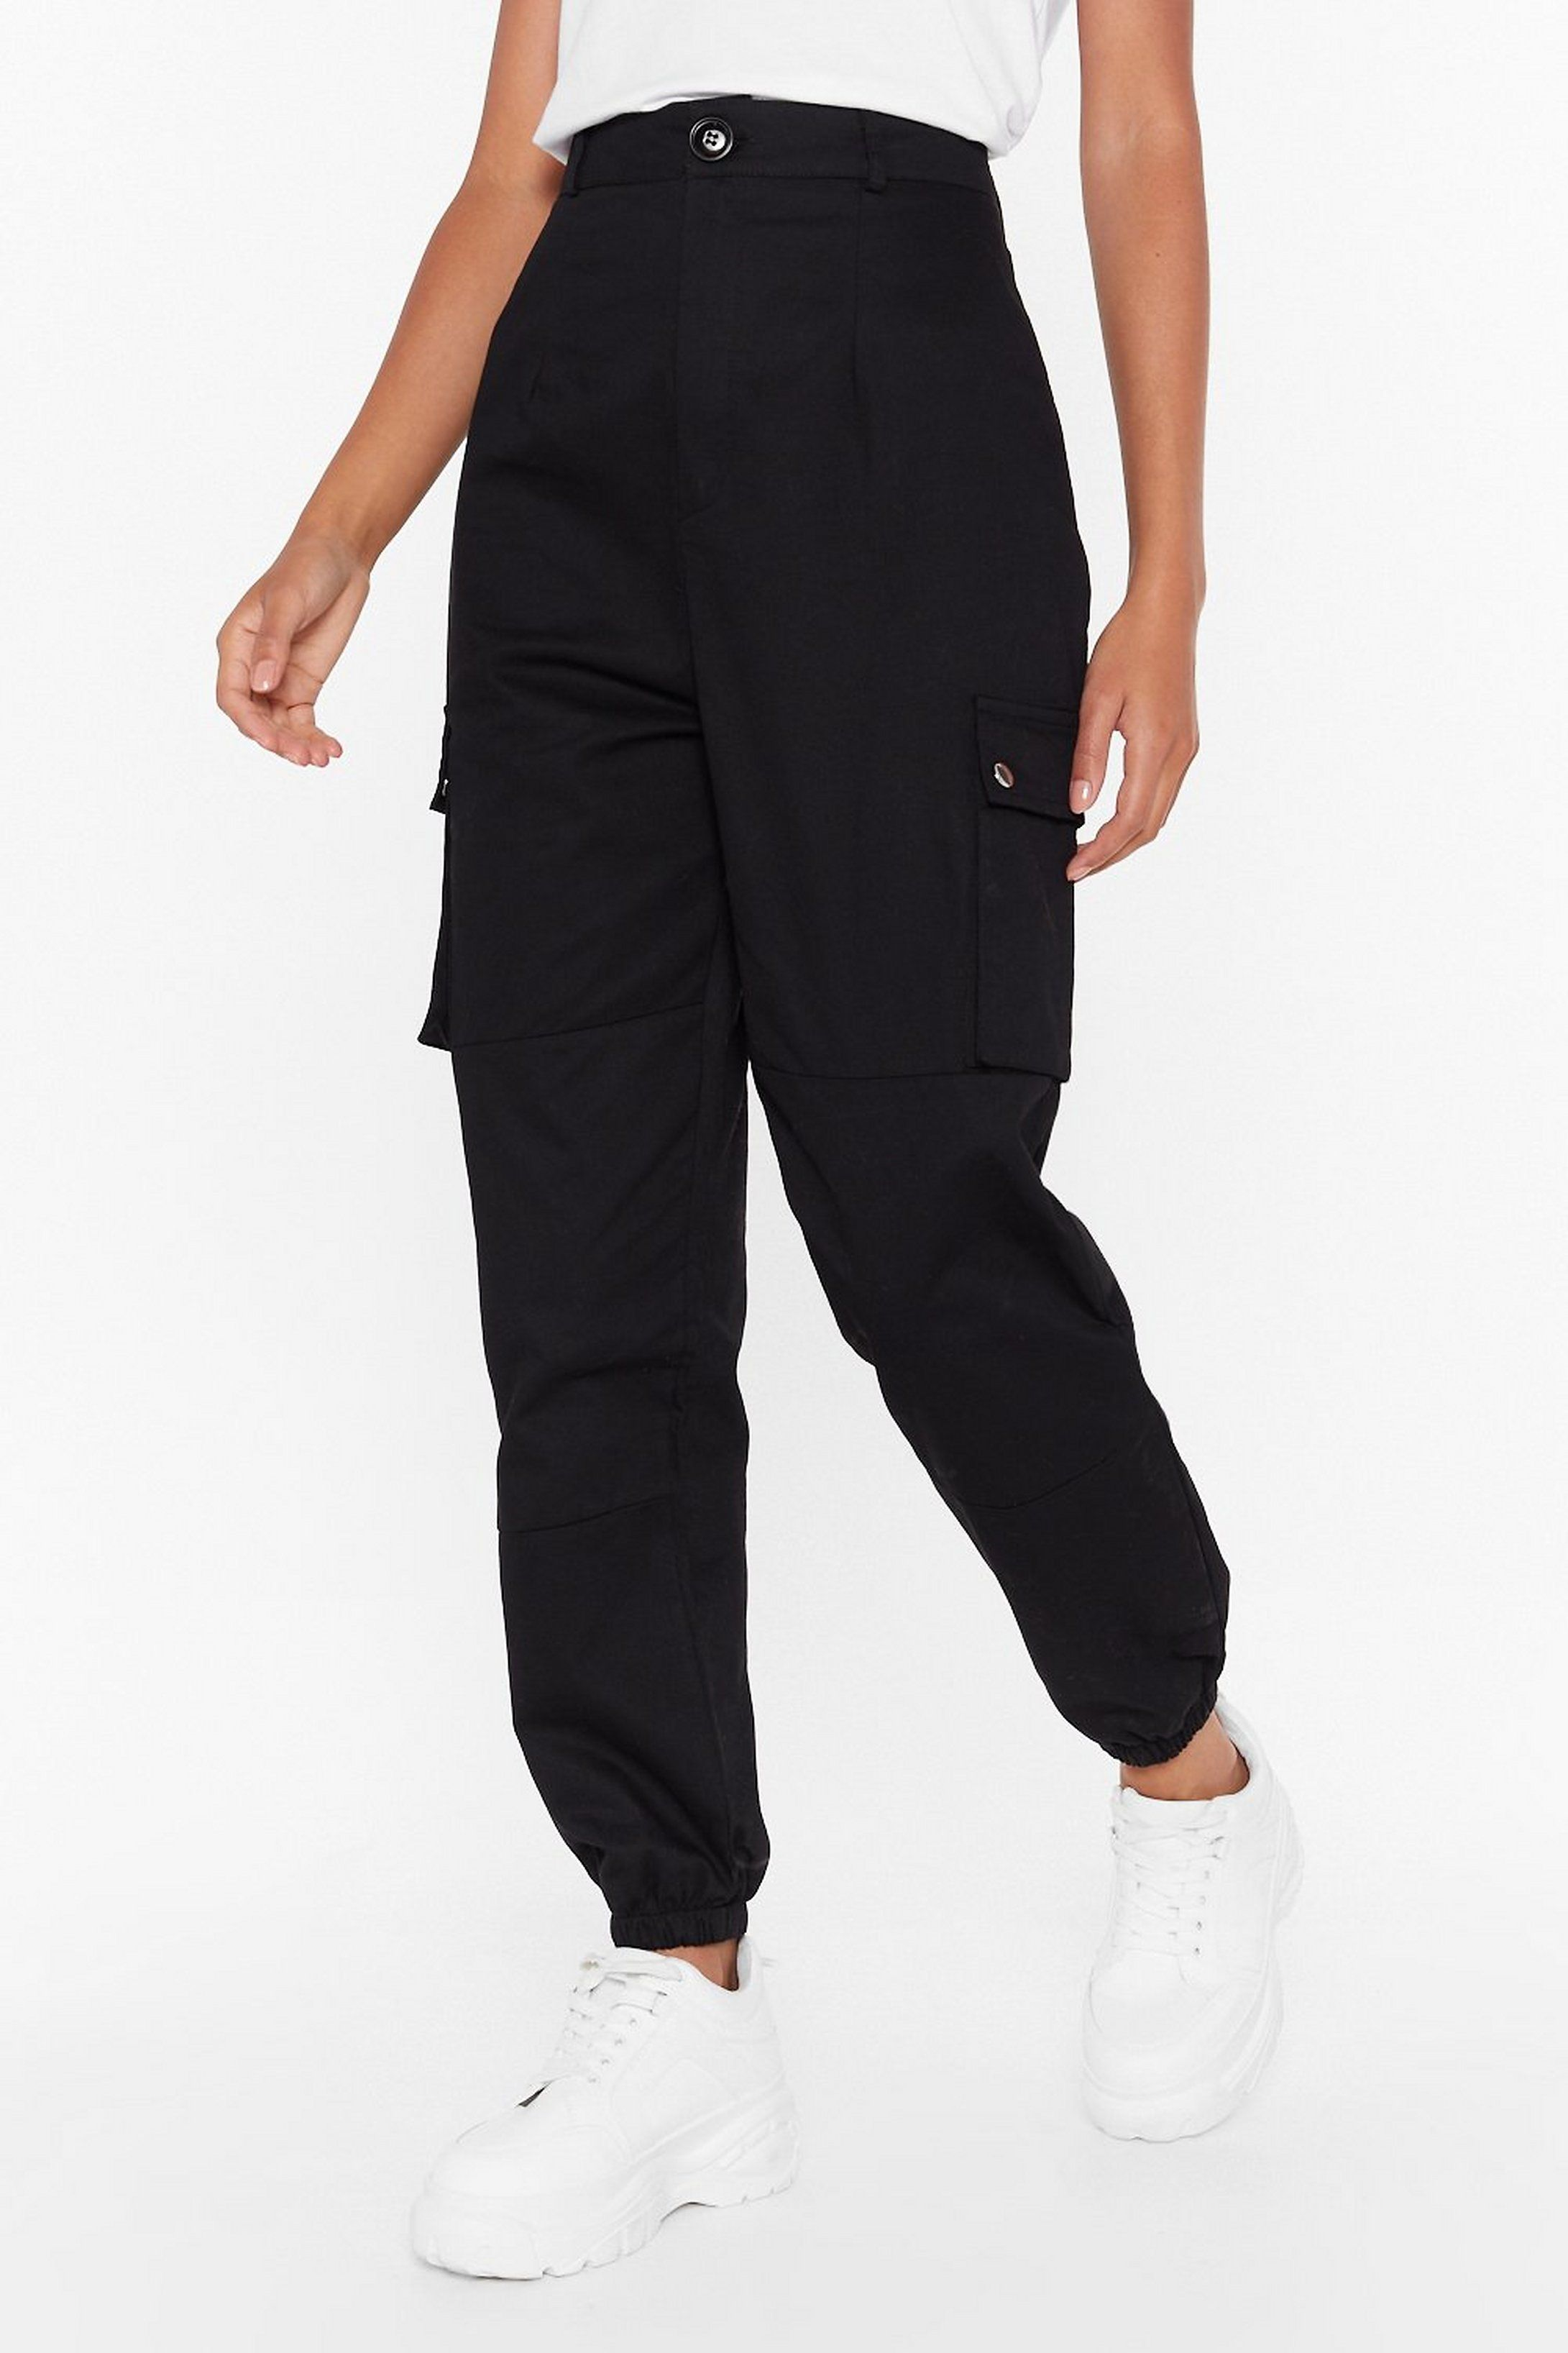 High-Waisted Utility Pants with Zip Closure | Nast